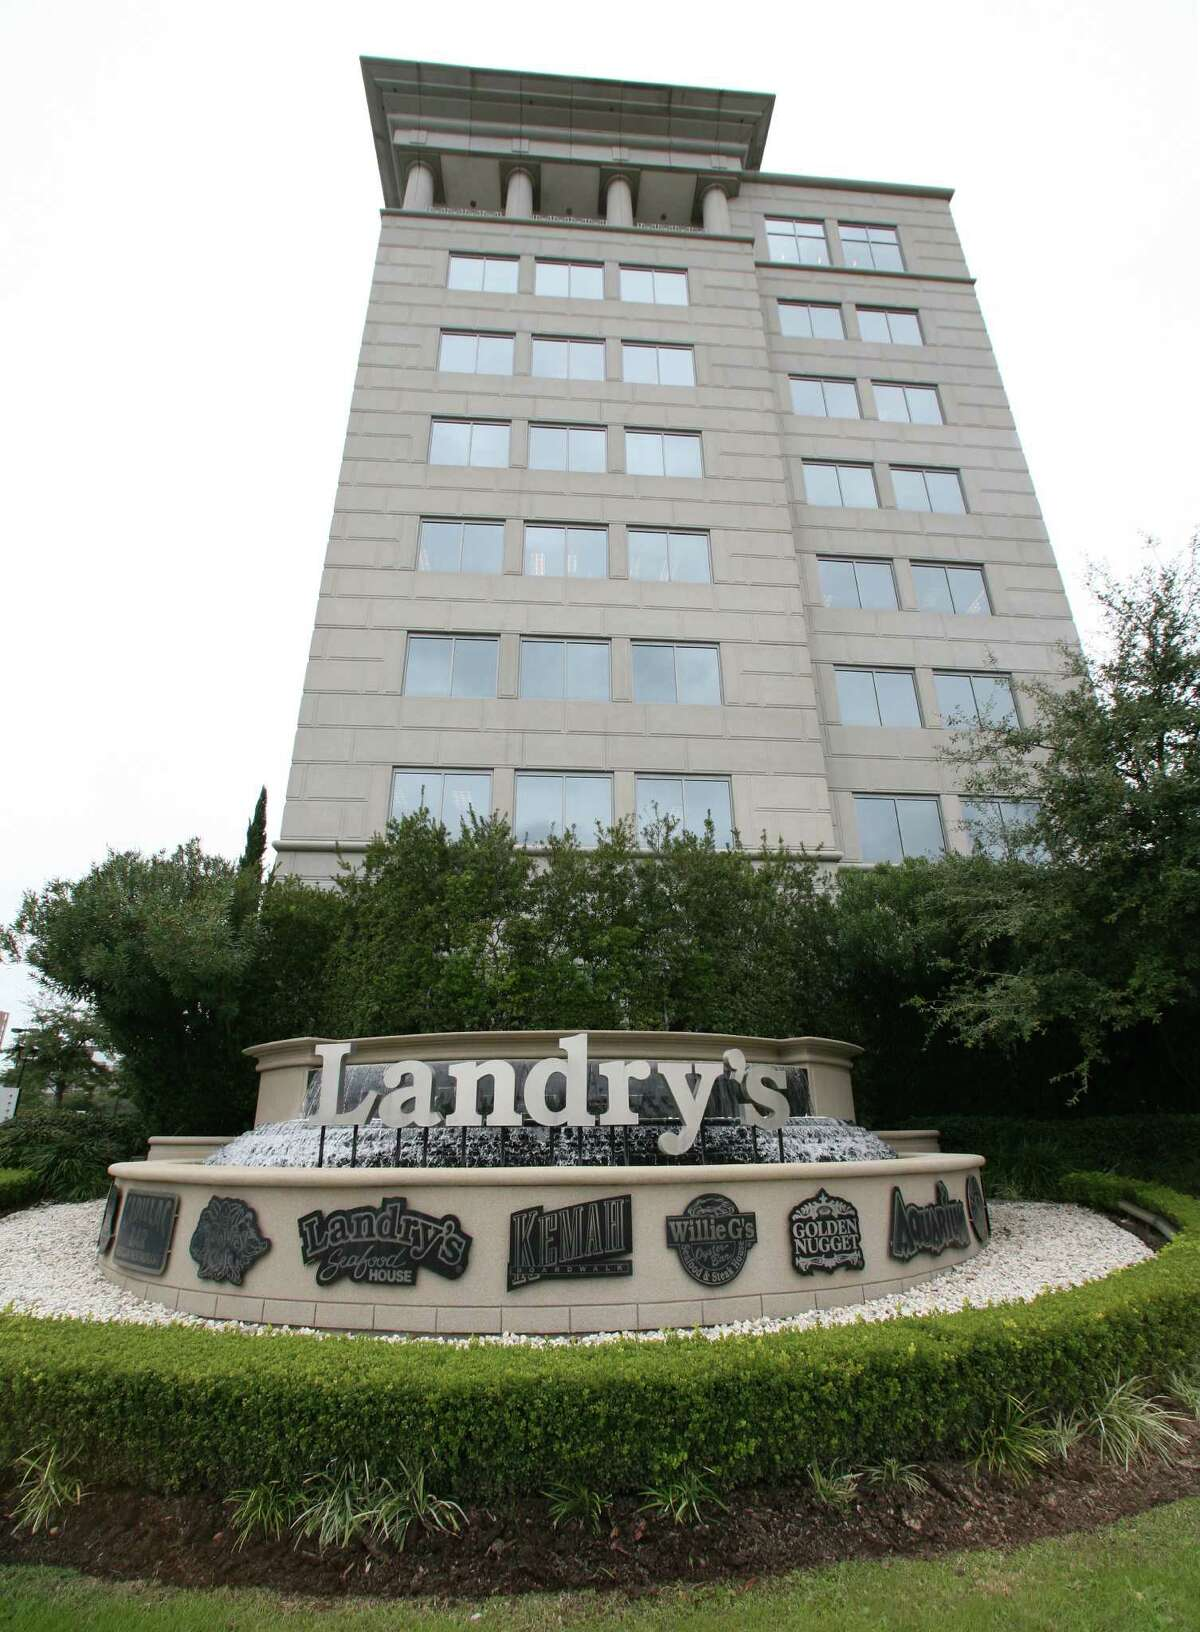 Fertitta's Houston-based company Landry's, Inc. boasts more than 600 concepts nationwide including over 60 brands, four aquariums, 11 hotels and two amusement parks.